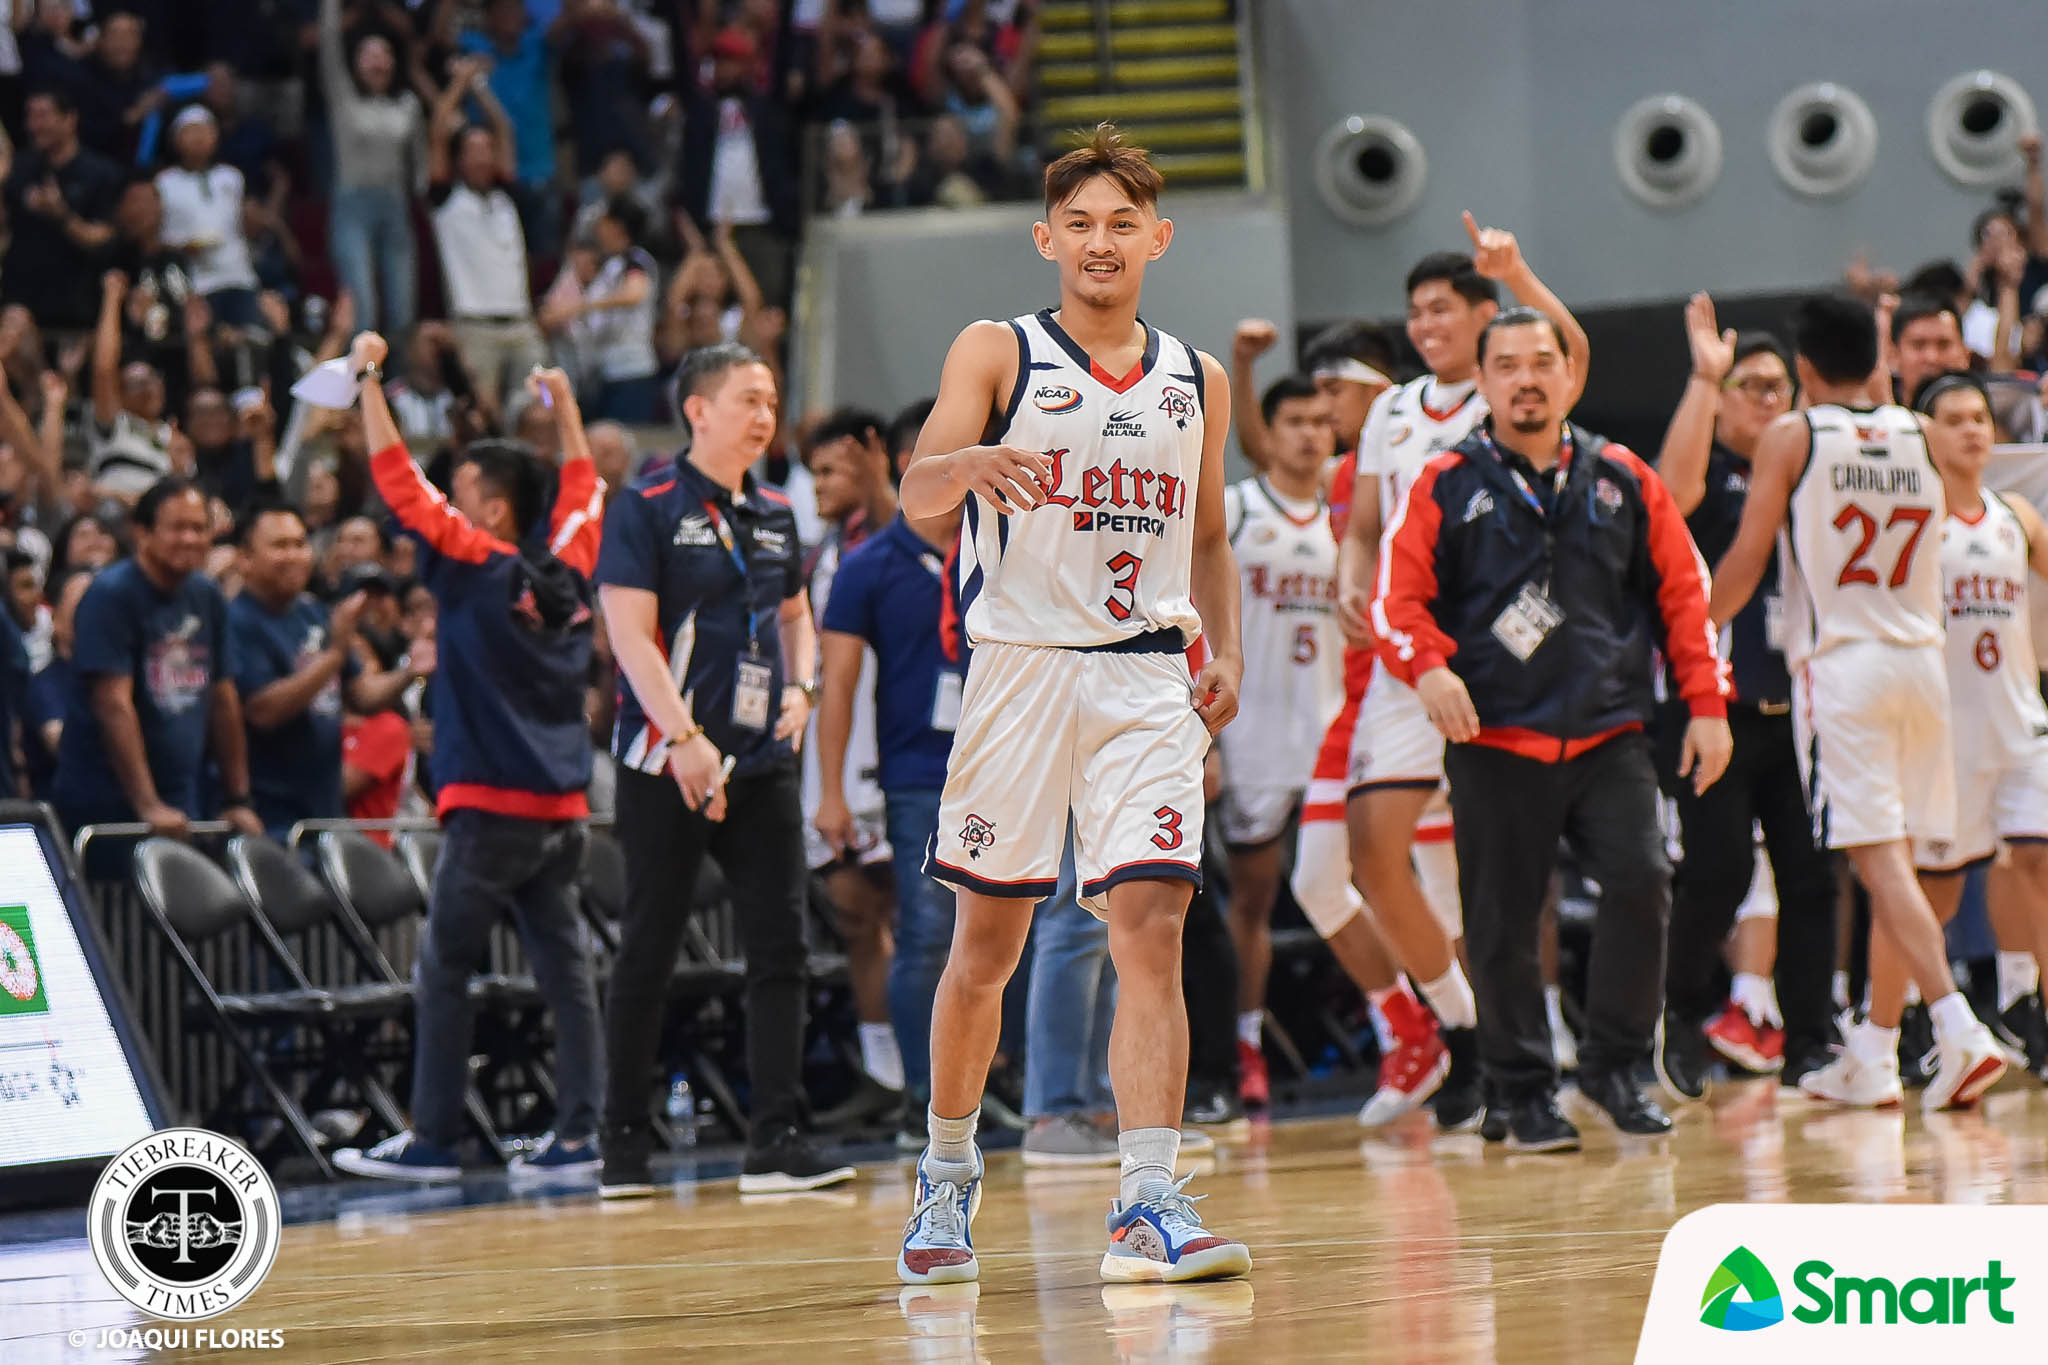 NCAA-95-SBU-vs.-CSJL-G2-Yu-2286 Fran Yu reminds Letran to keep underdog mentality despite title-favorites tag Basketball CSJL NCAA News  - philippine sports news